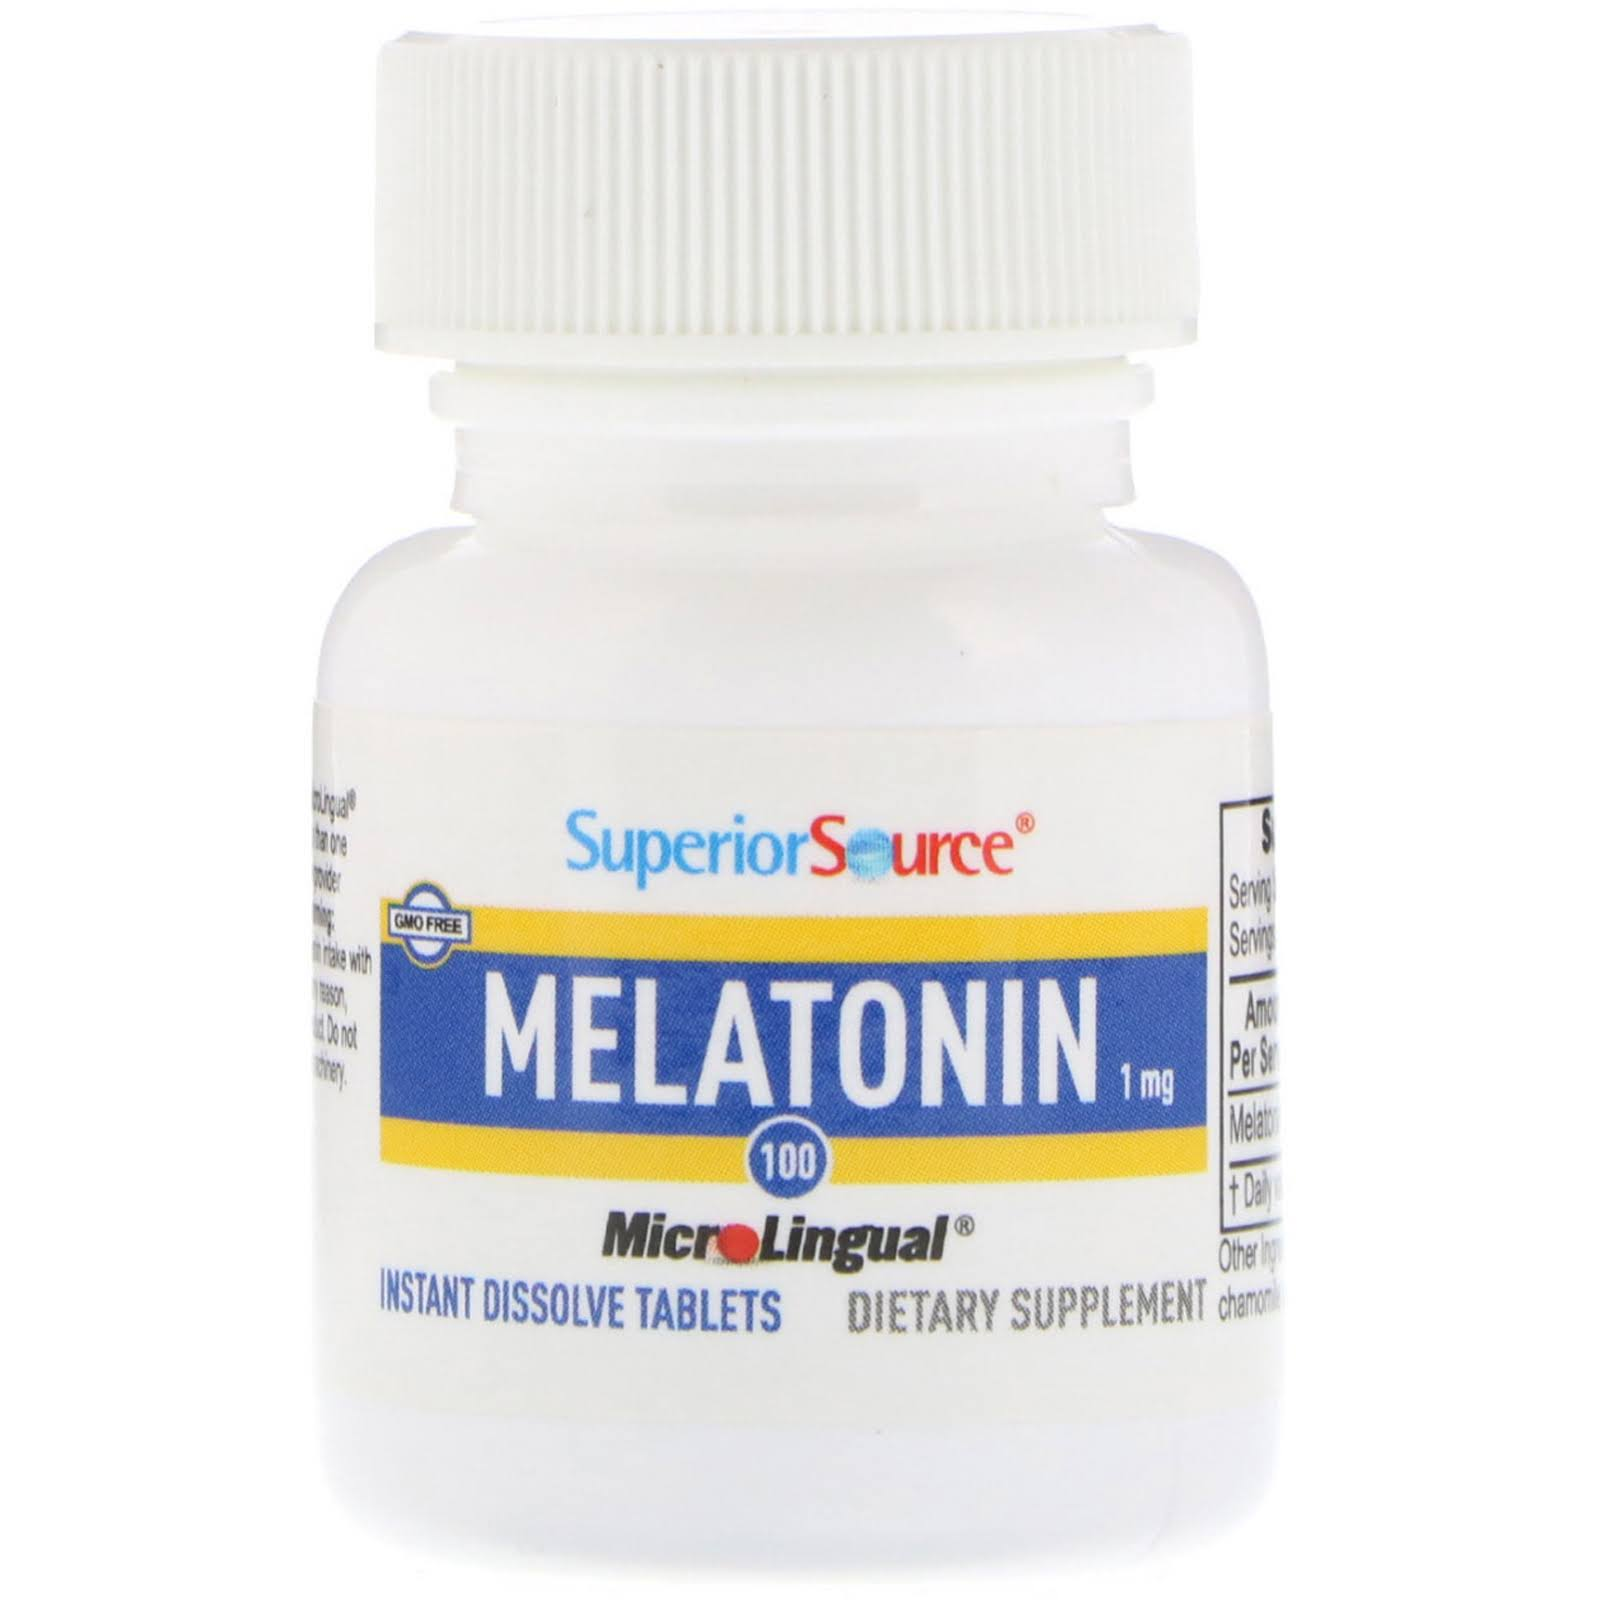 Superior Source Melatonin Instant Dissolve 1mg Dietary Supplement - 100 Tablets